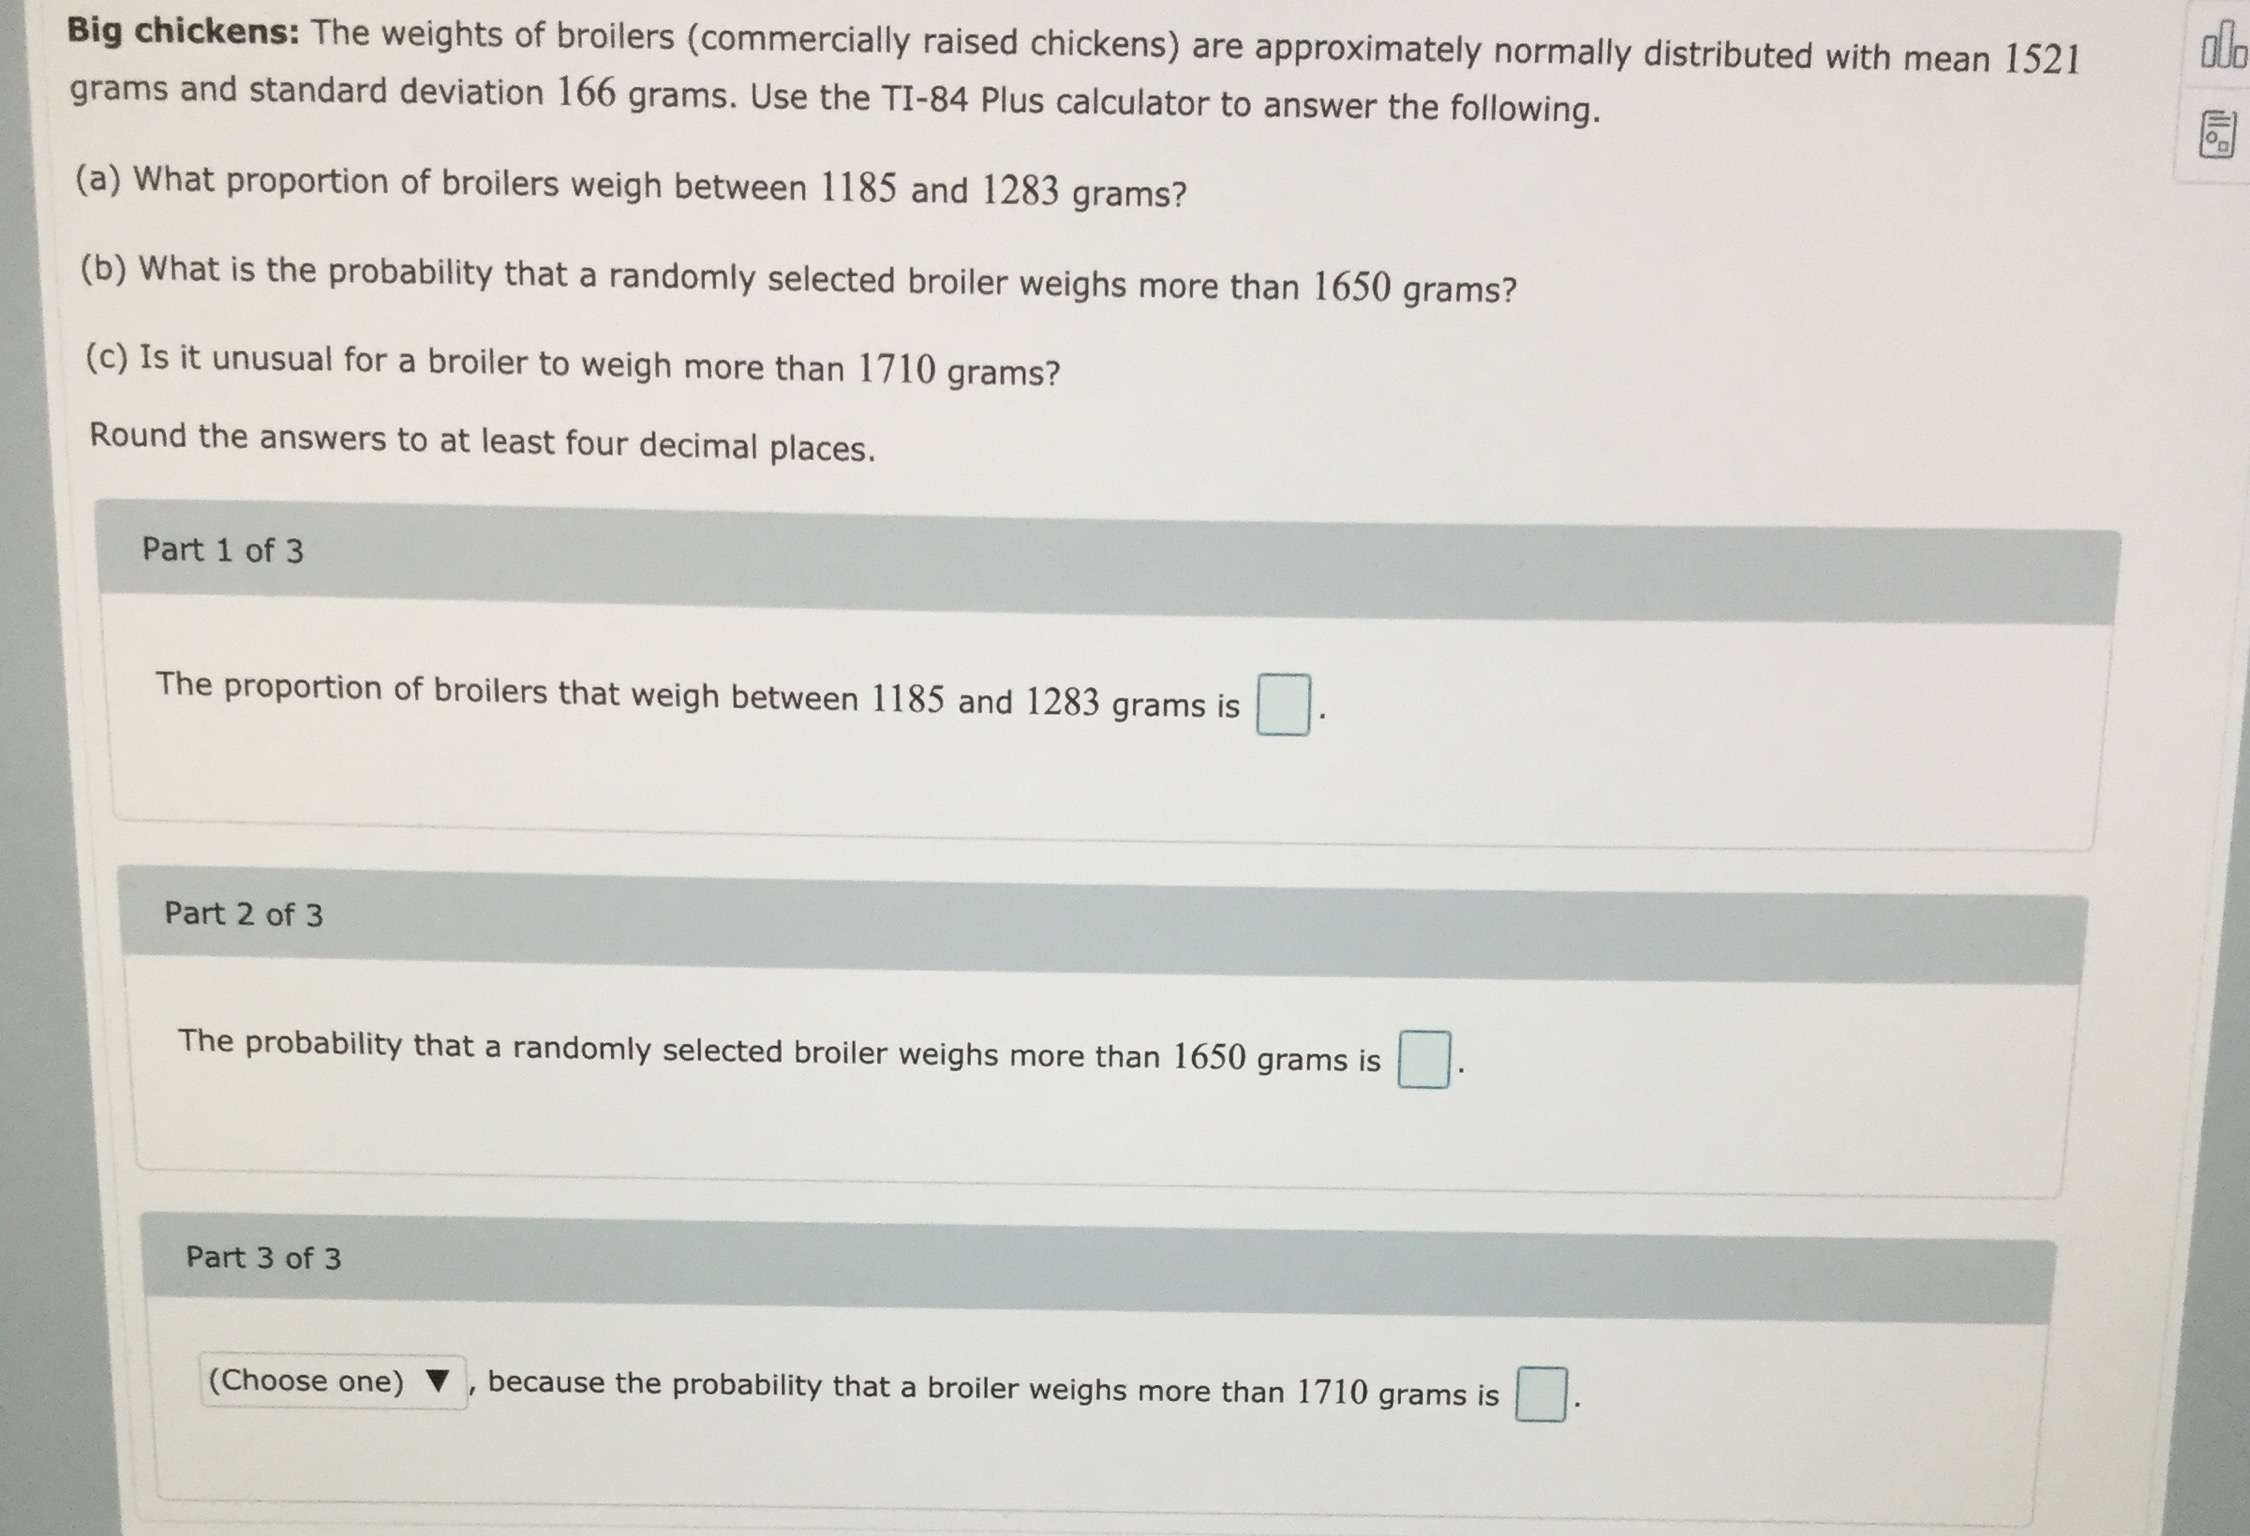 Big chickens: The weights of broilers (commercially raised chickens) are approximately normally distributed with mean 1521 dlo grams and standard deviation 166 grams. Use the TI-84 Plus calculator to answer the following. (a) What proportion of broilers weigh between 1185 and 1283 grams? (b) What is the probability that a randomly selected broiler weighs more than 1650 grams? (c) Is it unusual for a broiler to weigh more than 1710 grams? Round the answers to at least four decimal places. Part 1 of 3 The proportion of broilers that weigh between 1185 and 1283 grams is Part 2 of 3 The probability that a randomly selected broiler weighs more than 1650 grams is Part 3 of 3 because the probability that a broiler weighs more than 1710 grams is (Choose one) V